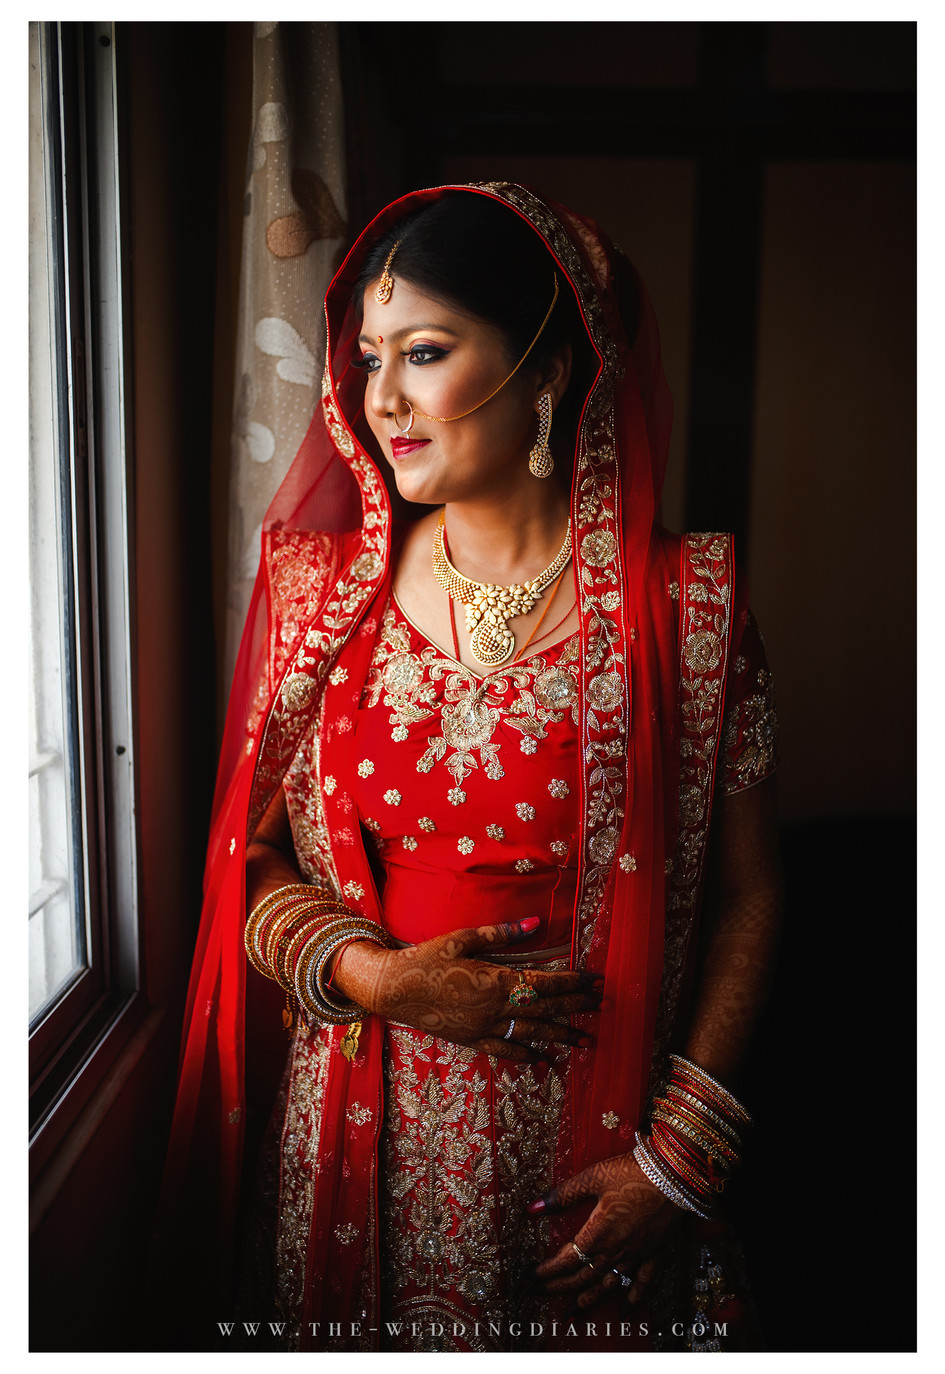 The Wedding Diaries - Bridal Portrait